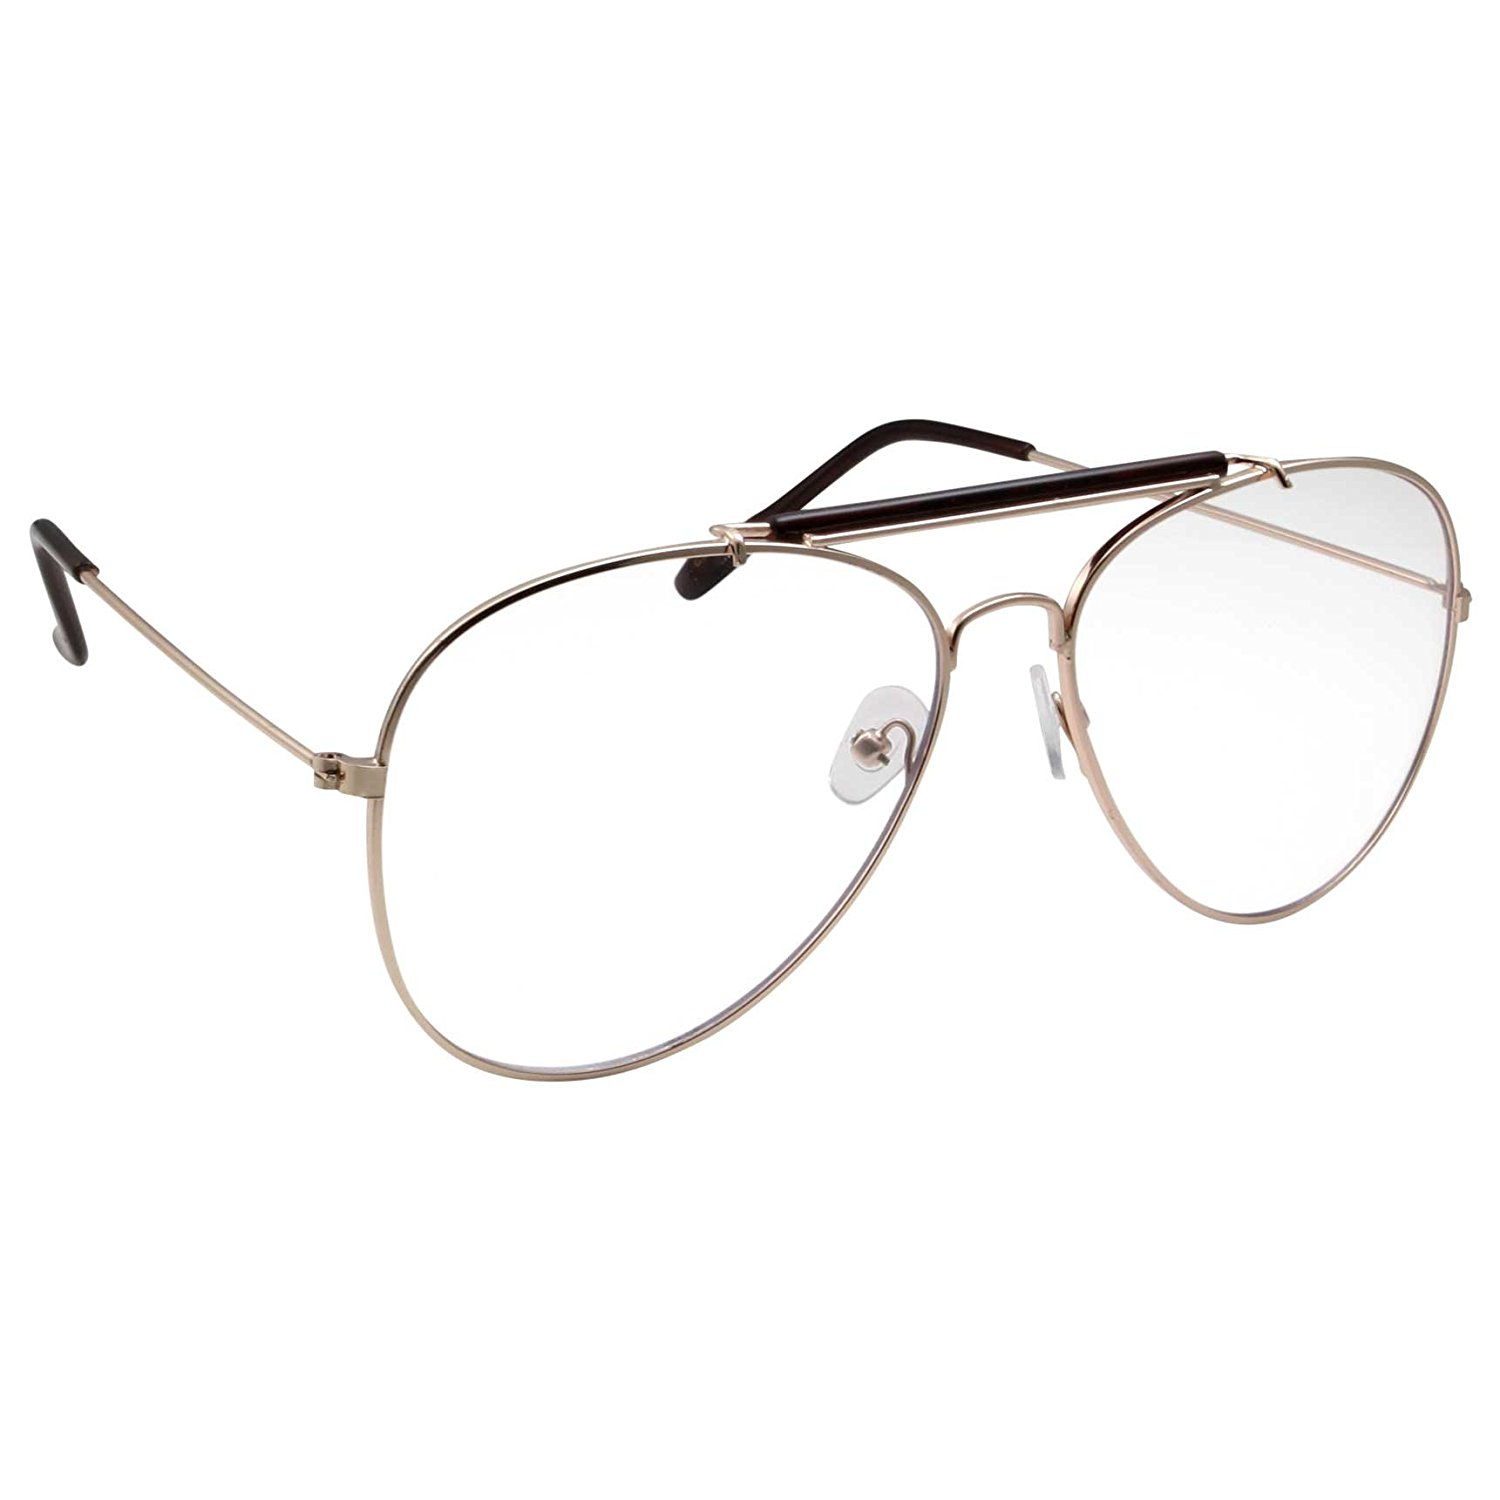 42bbbebac9 Non-Prescription Bar-Top Aviator Clear Lens Glasses